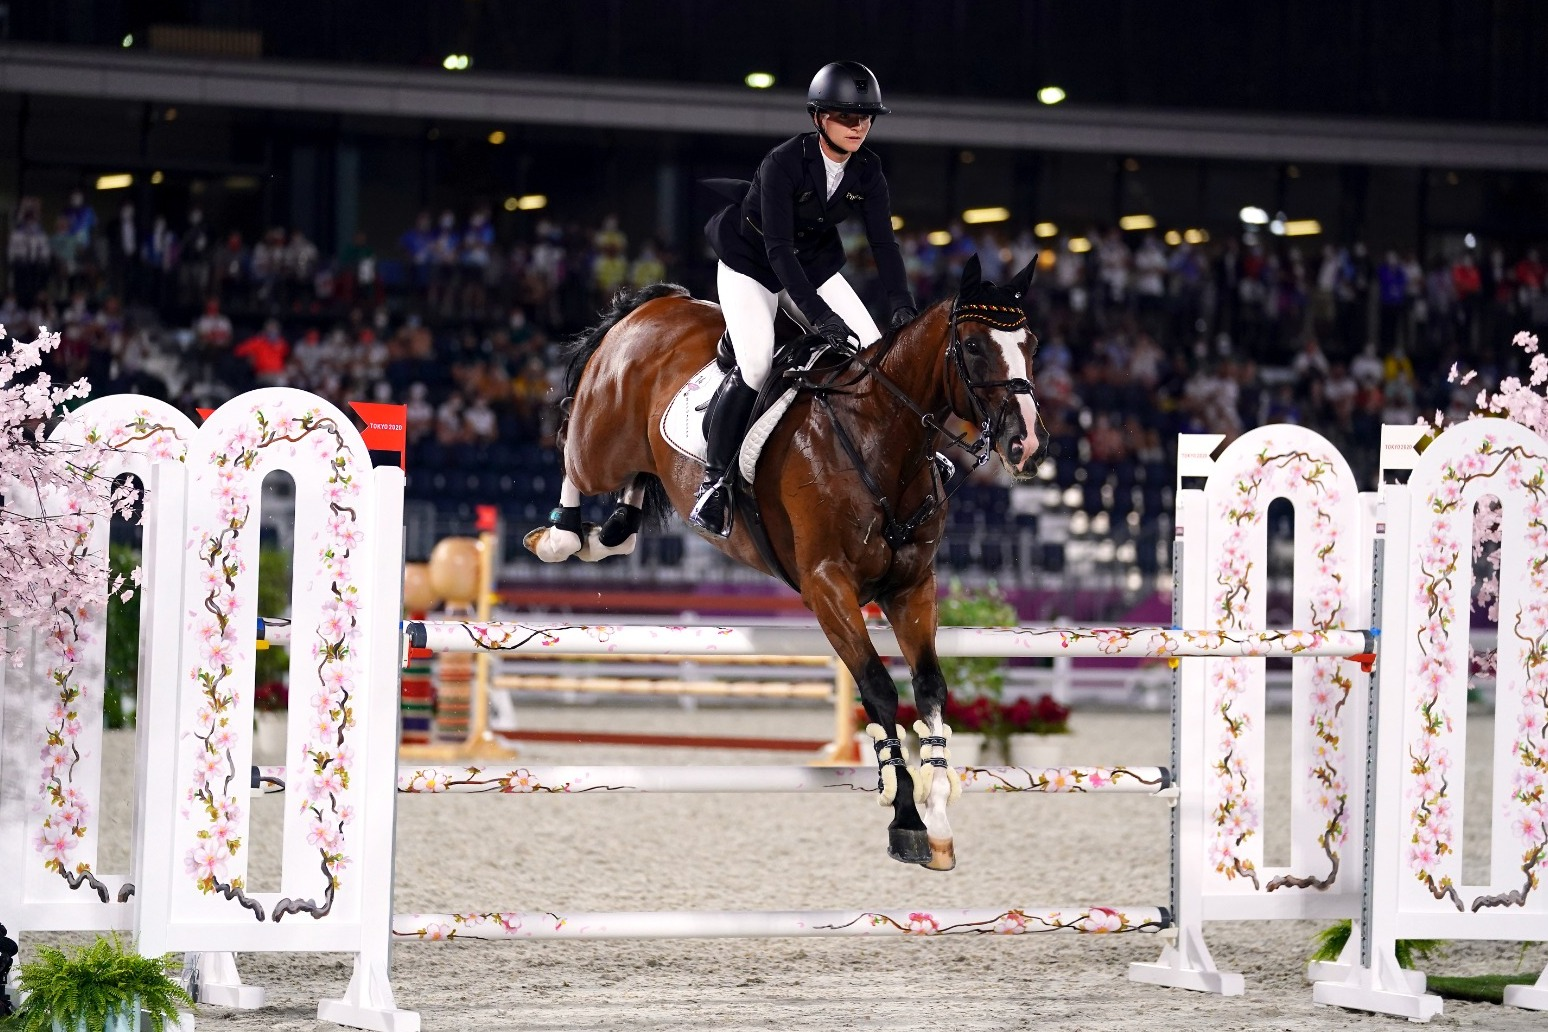 Team GB first gold in show jumping in more than 50 years